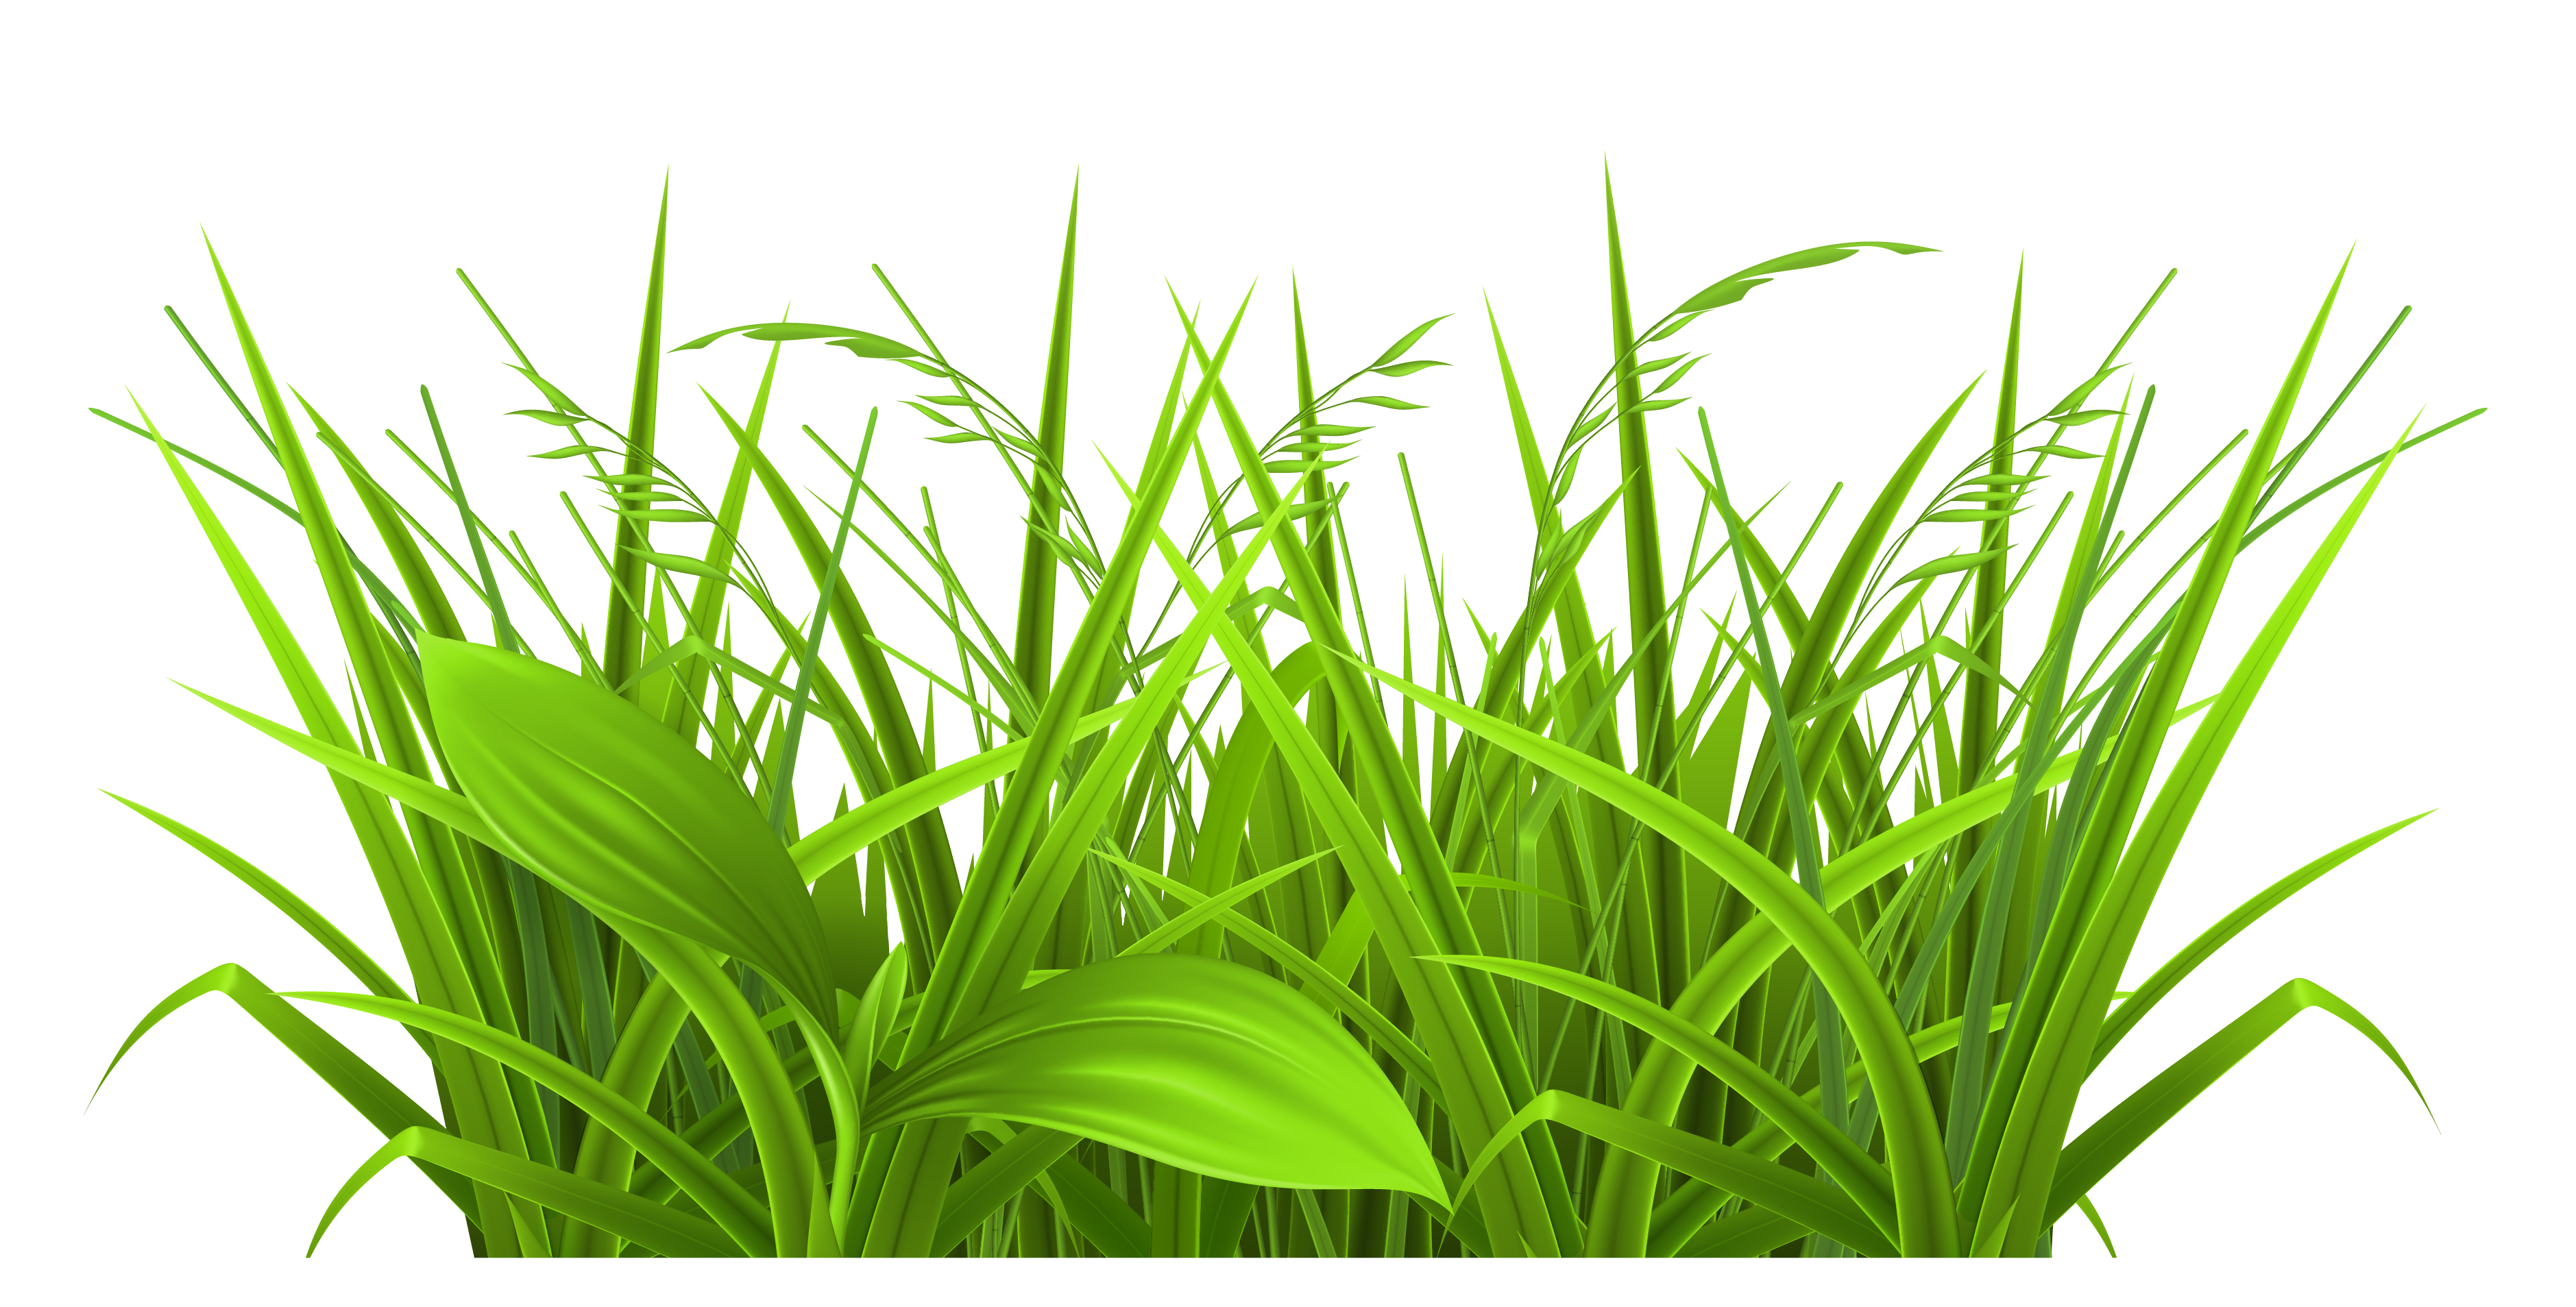 collection of grass. Wheat clipart green